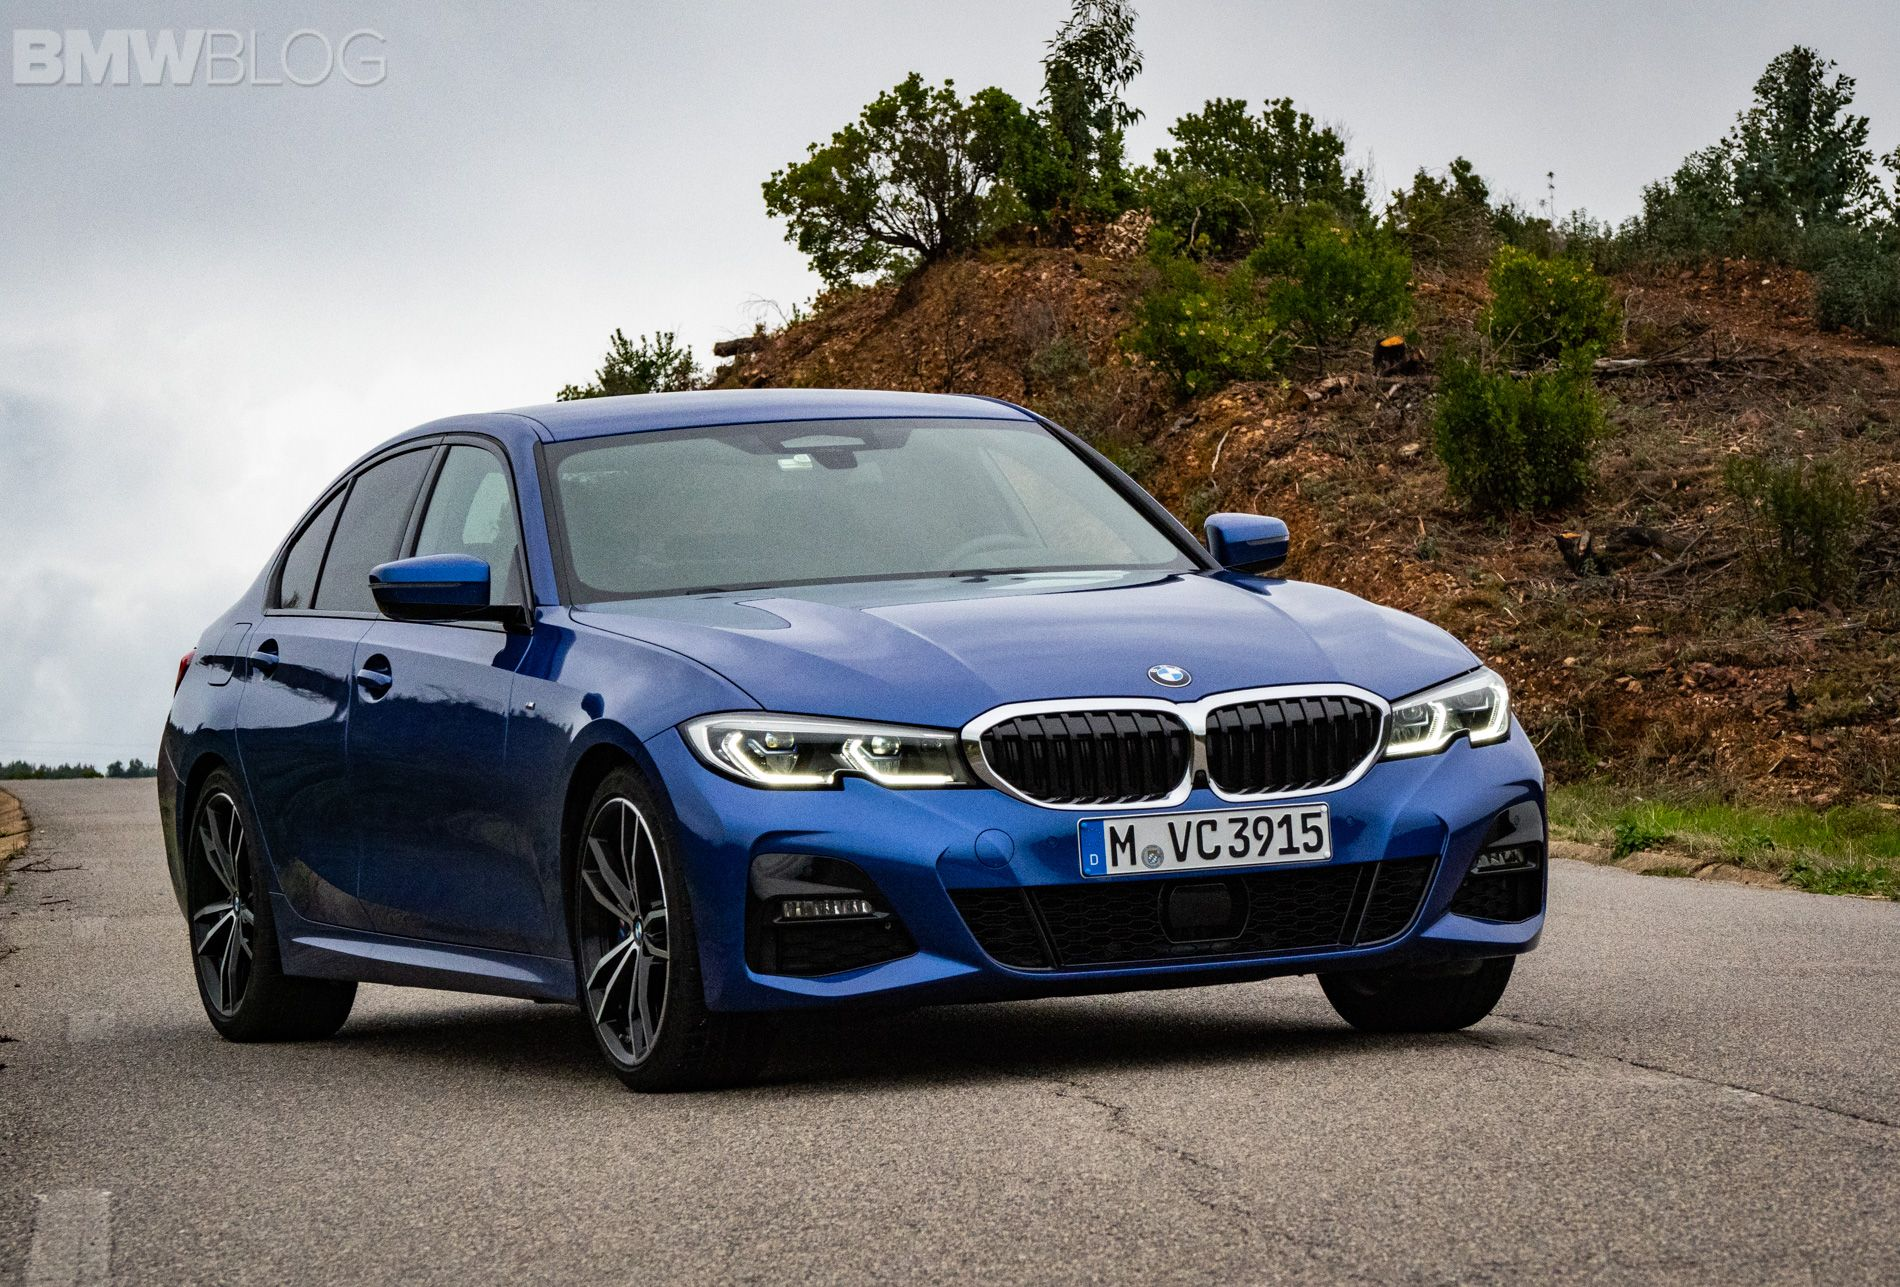 Video Motorweek Calls New Bmw 3 Series A Back To Roots Model